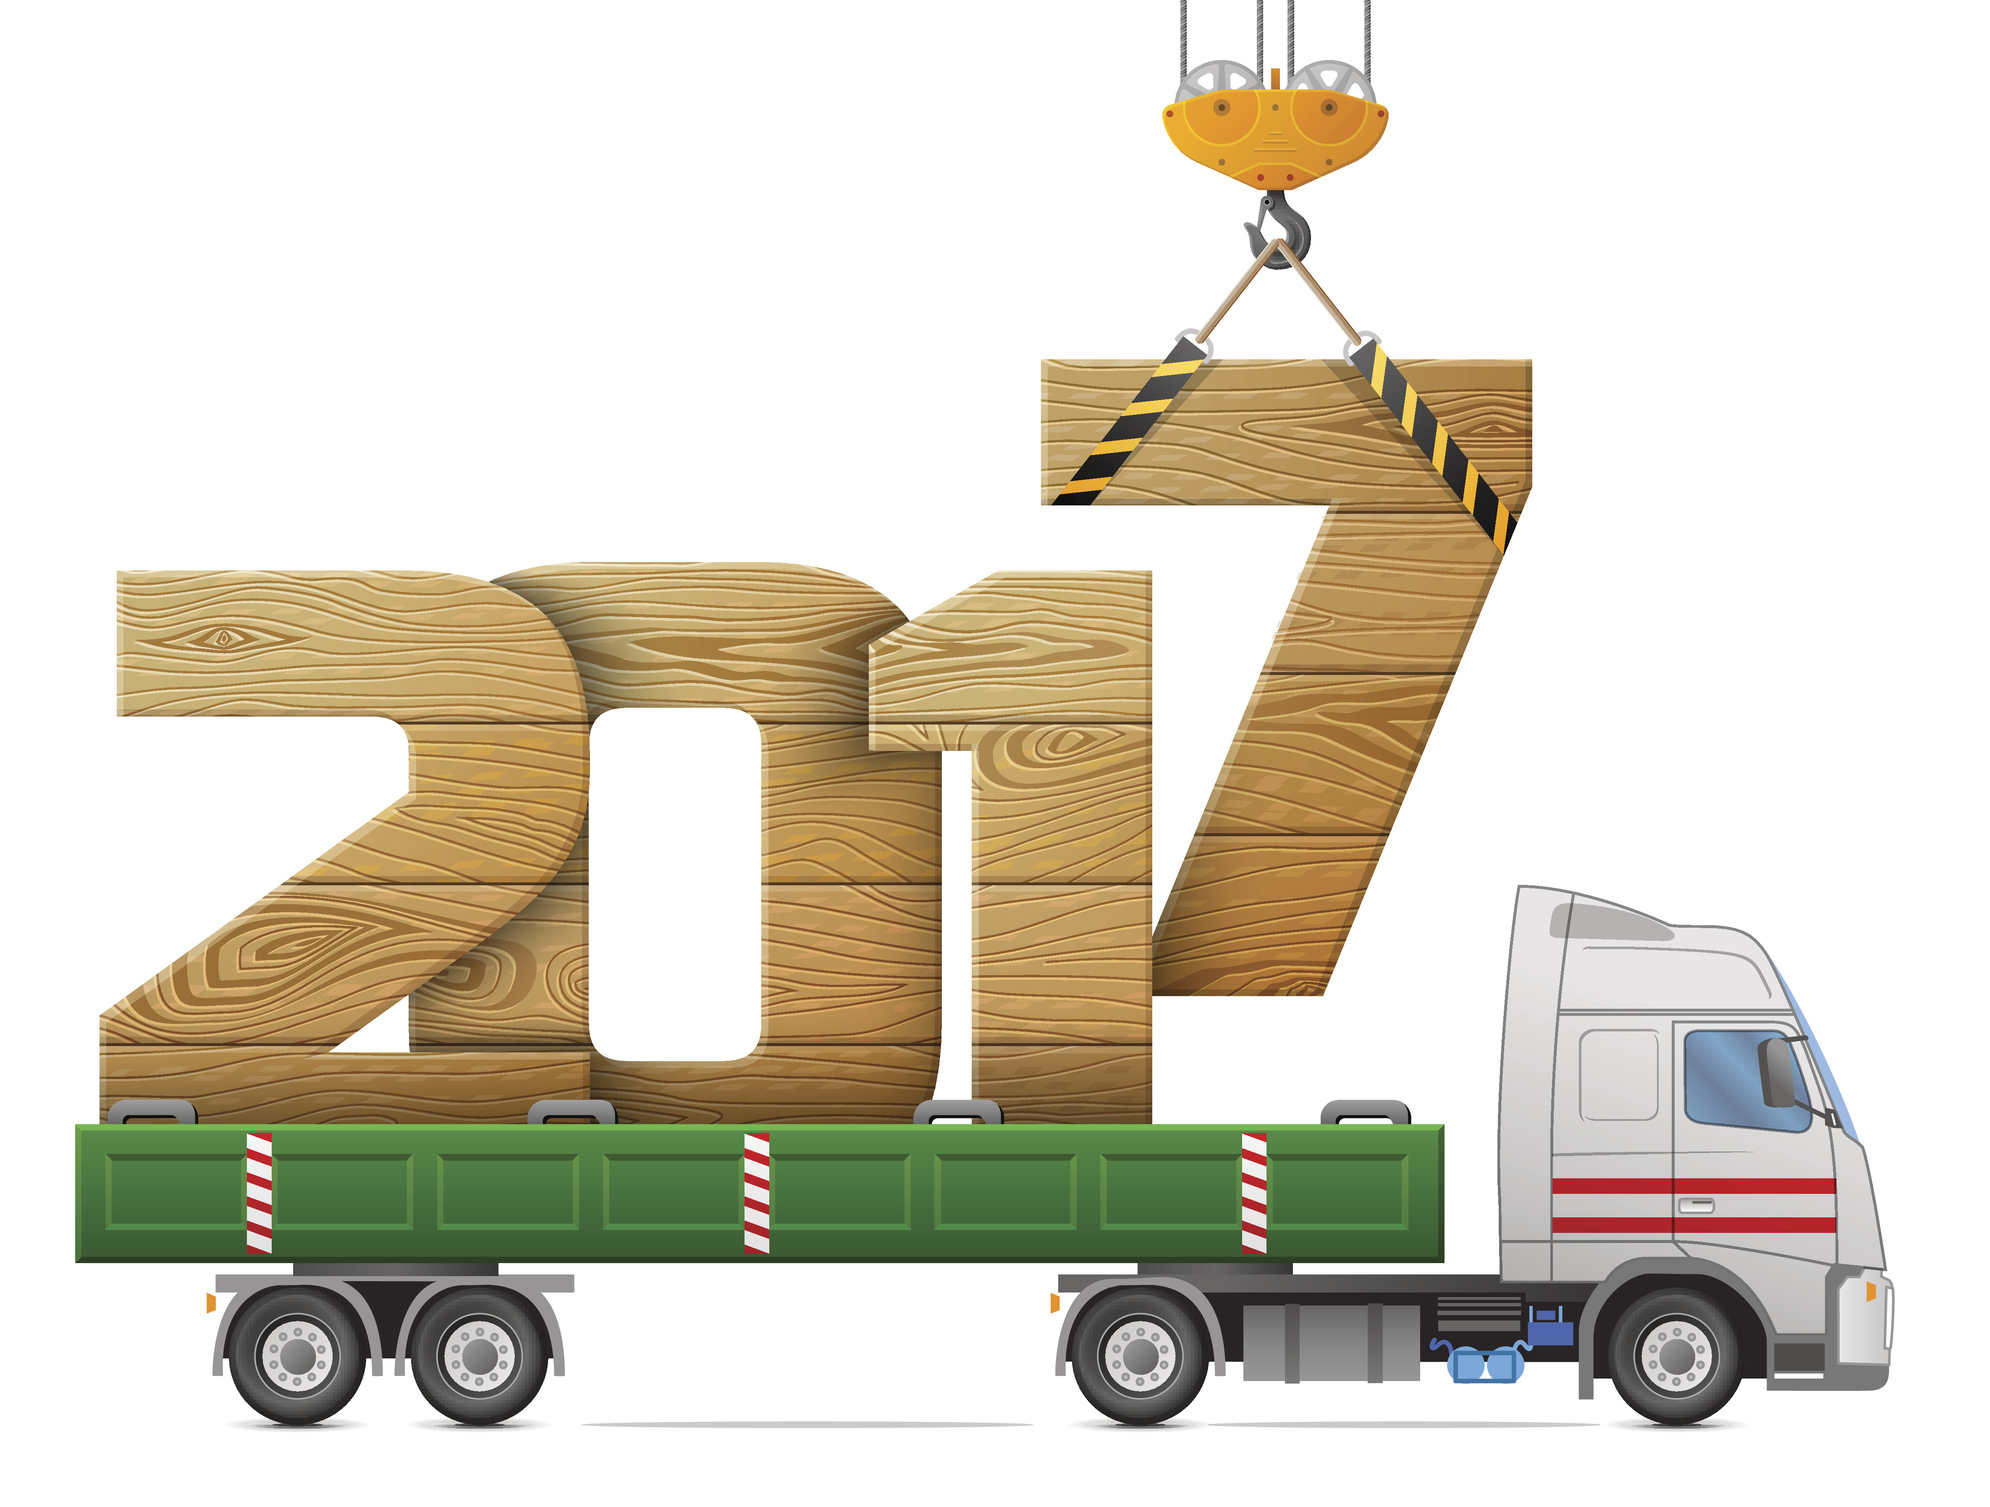 Big wooden year number in back of truck. Vector illustration for new years day, christmas, transportation, winter holiday, new years eve, trucking, silvester, etc